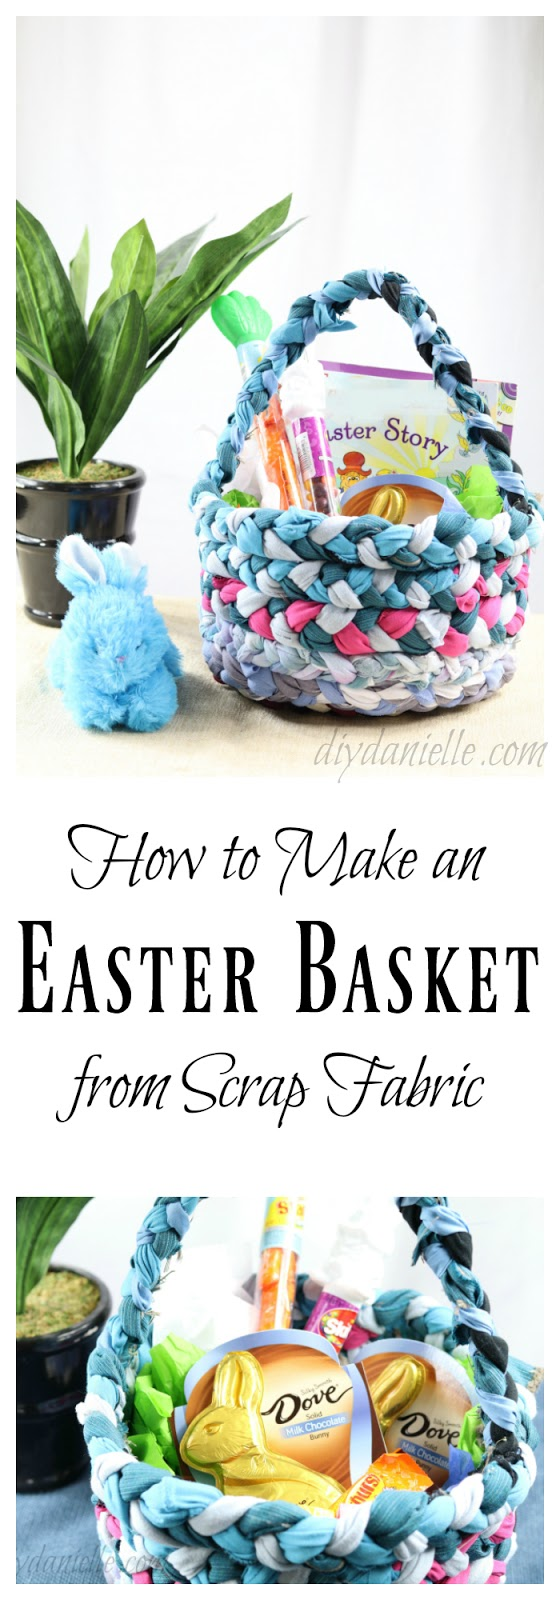 Learn to Hand Sew a DIY Easter Basket